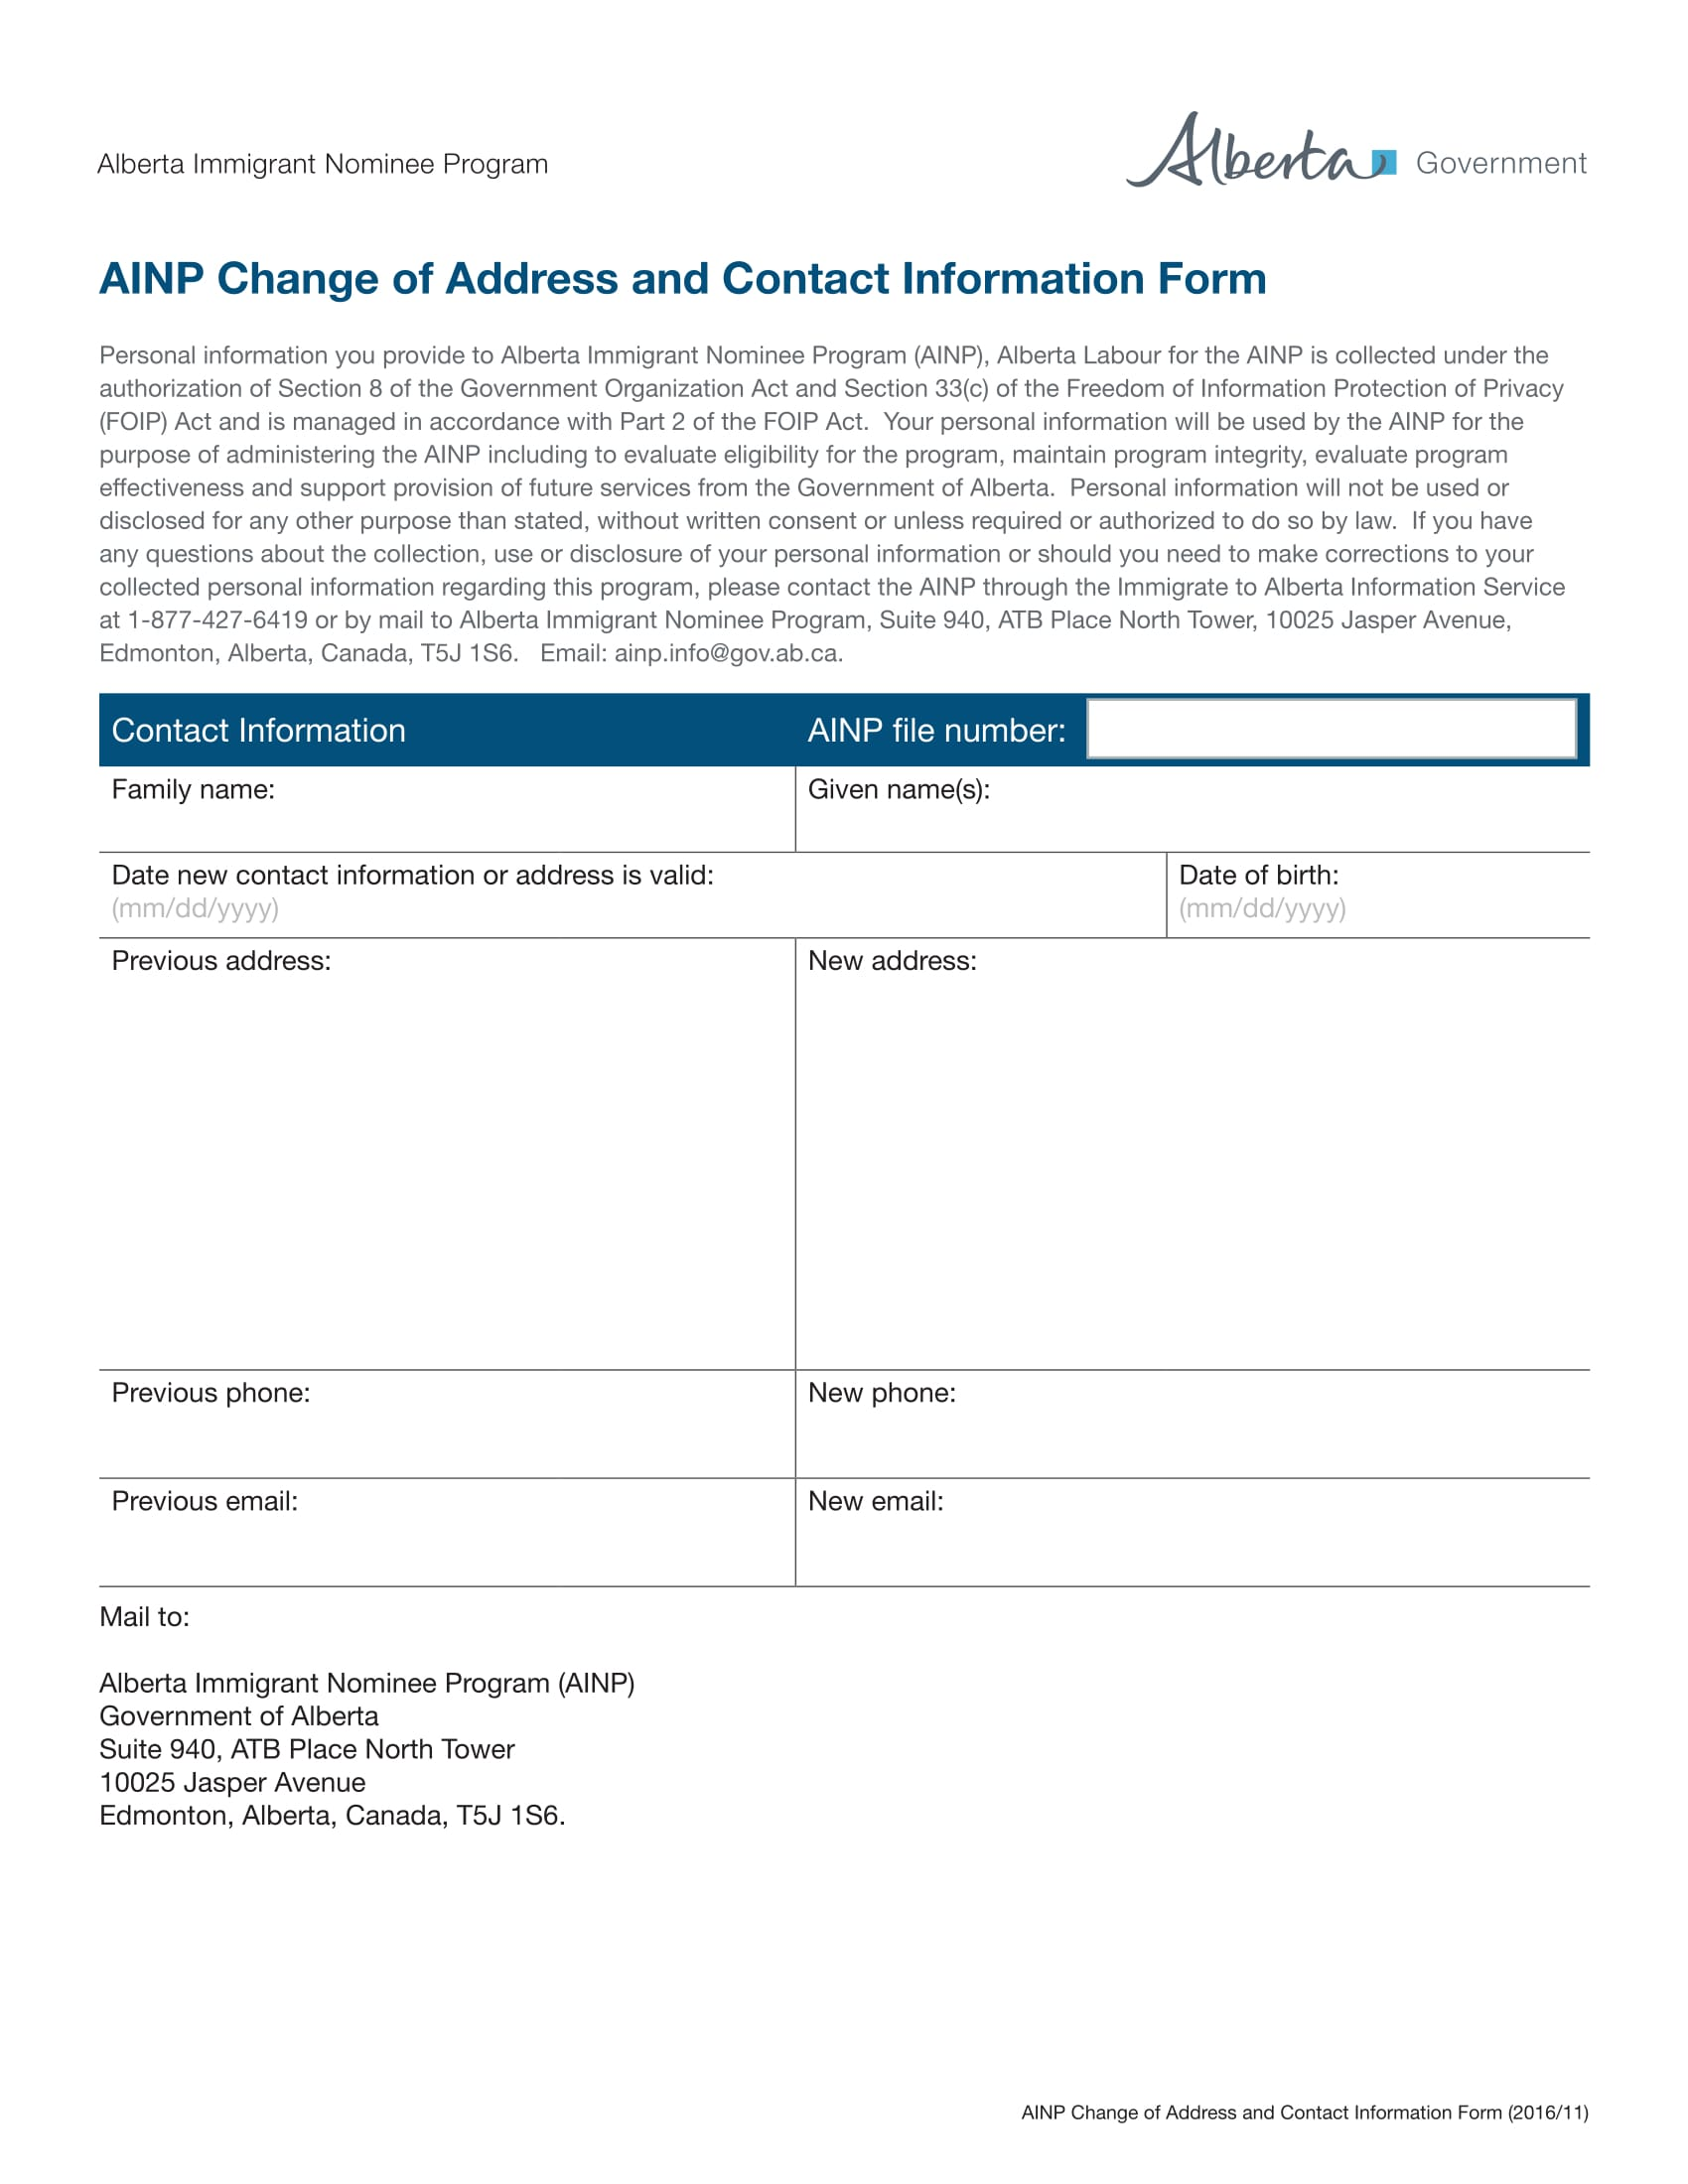 change of contact information form 1